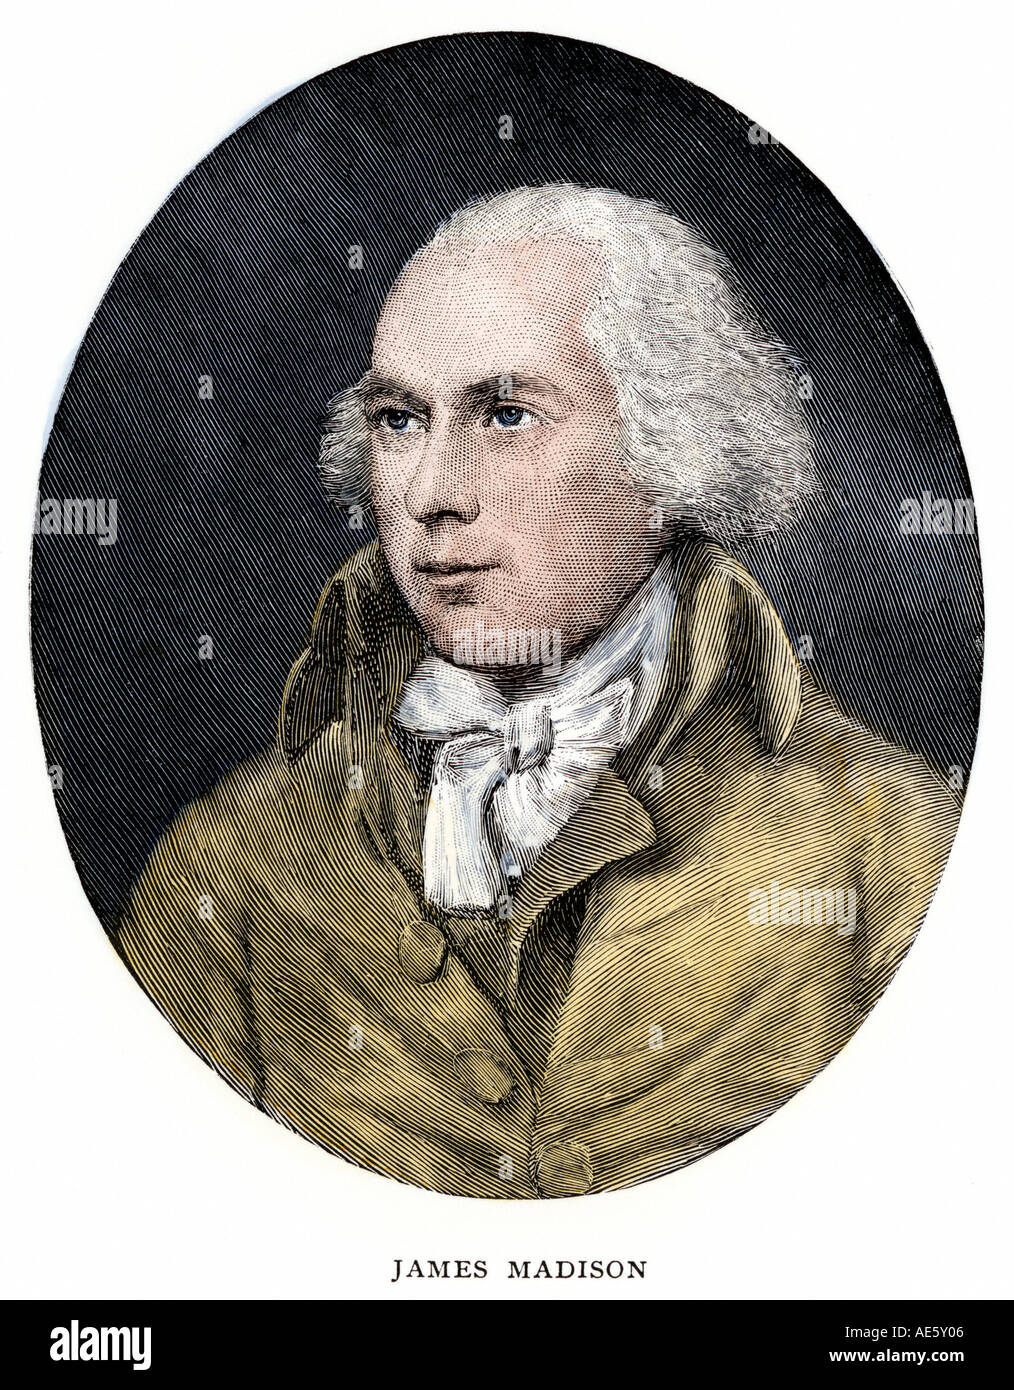 James Madison portrait in oval. Hand-colored woodcut - Stock Image